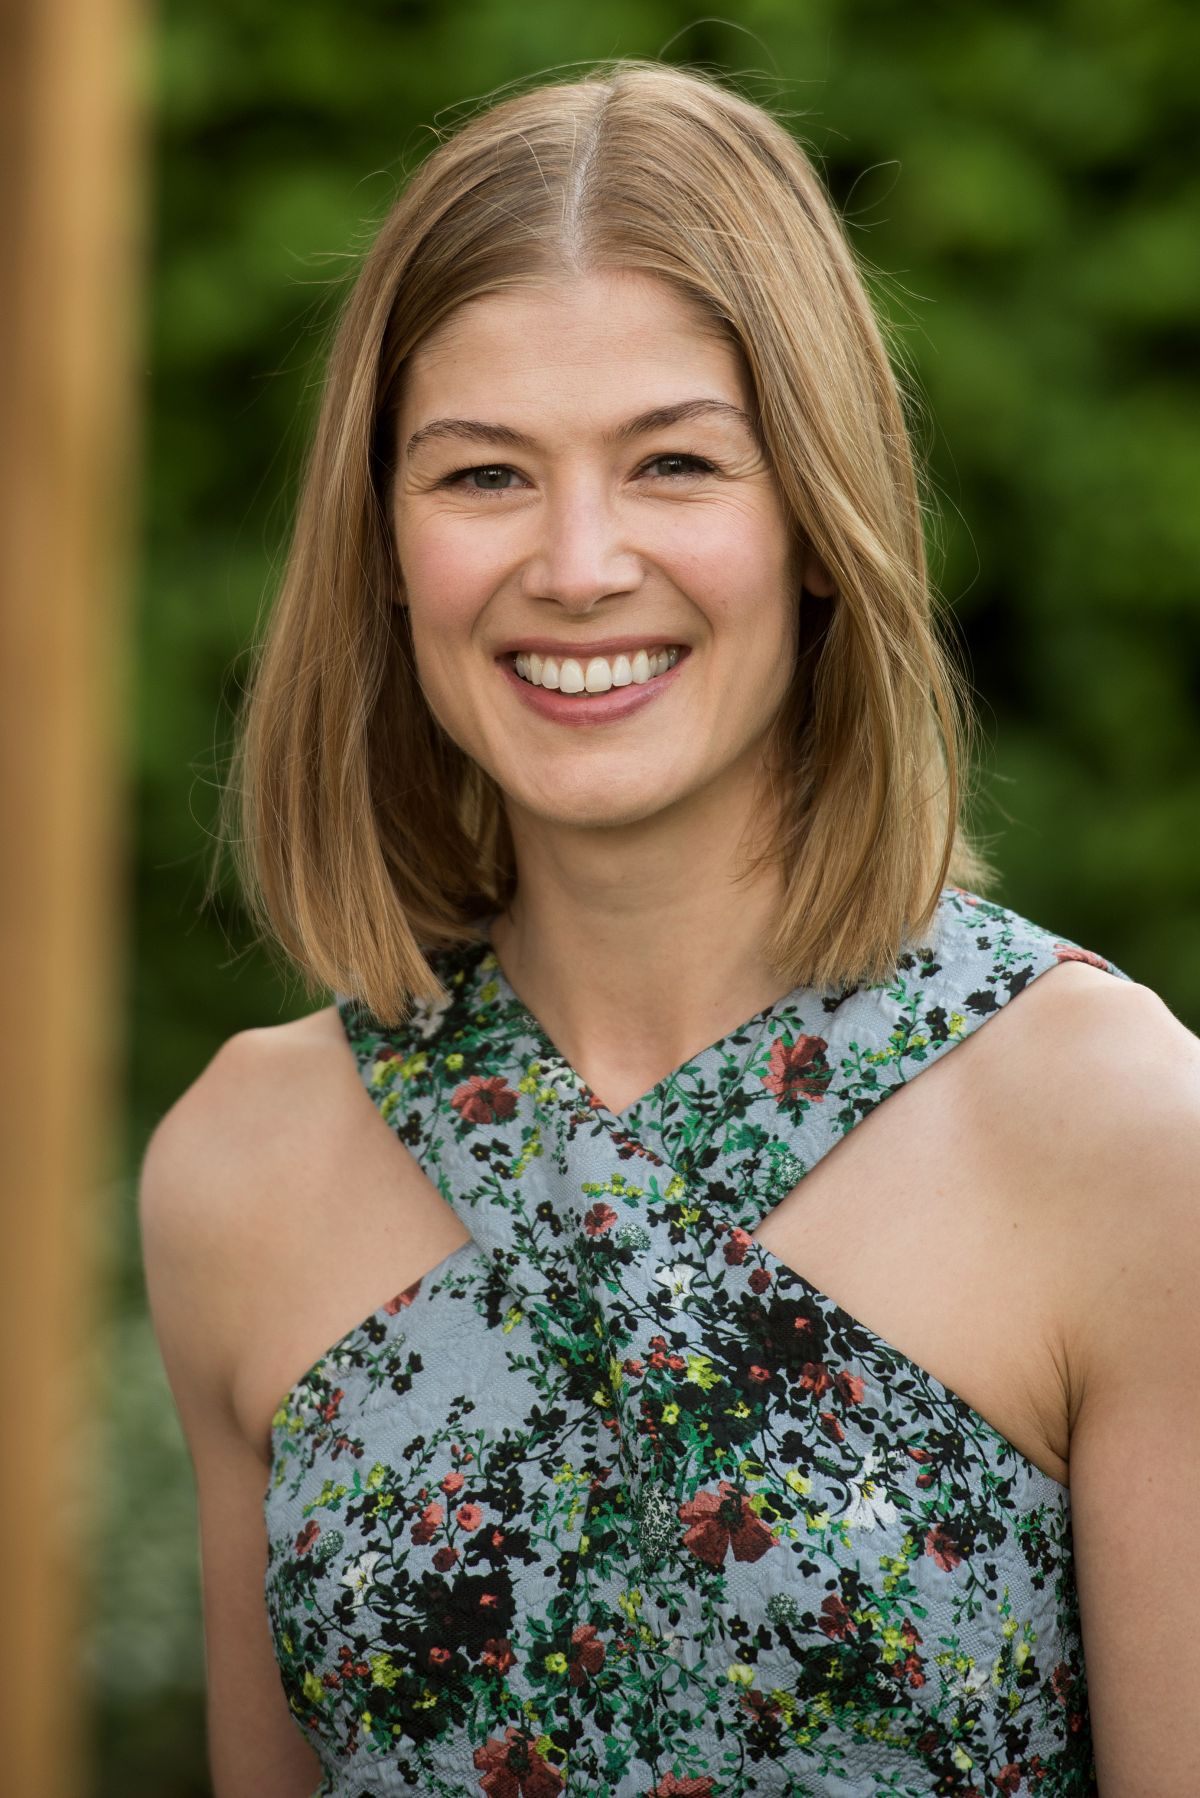 ROSAMUND PIKE at Chelsea Flower Show in London 05/23/2016 ...